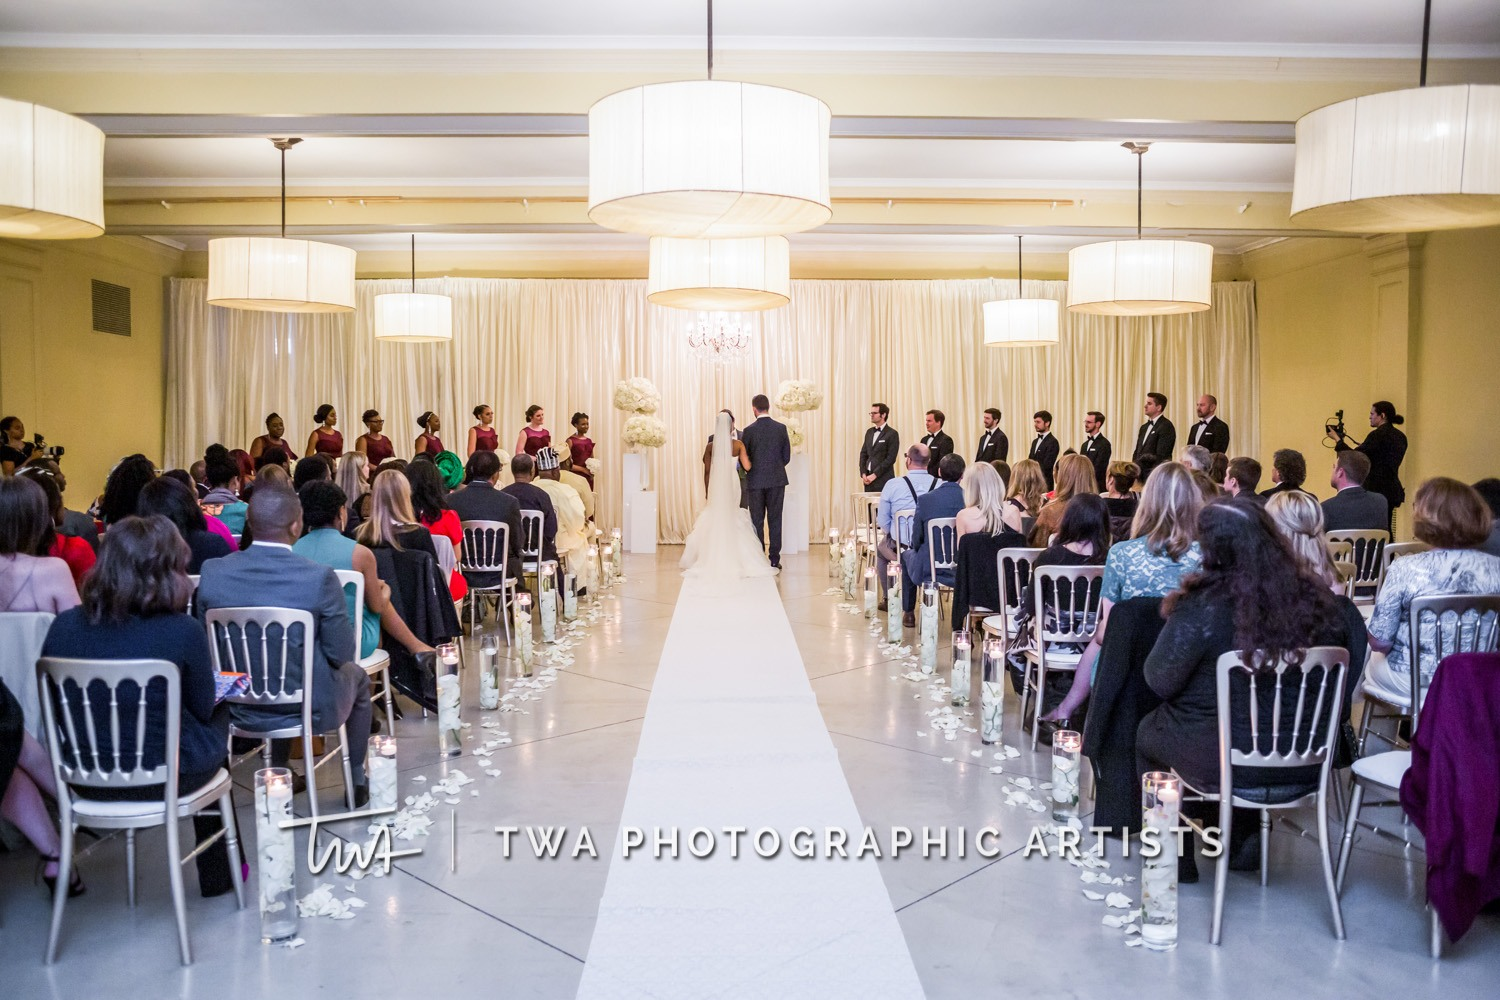 Chicago-Wedding-Photographer-TWA-Photographic-Artists-Stan-Mansion_Ityavyar_Oakley_MJ-0265-1